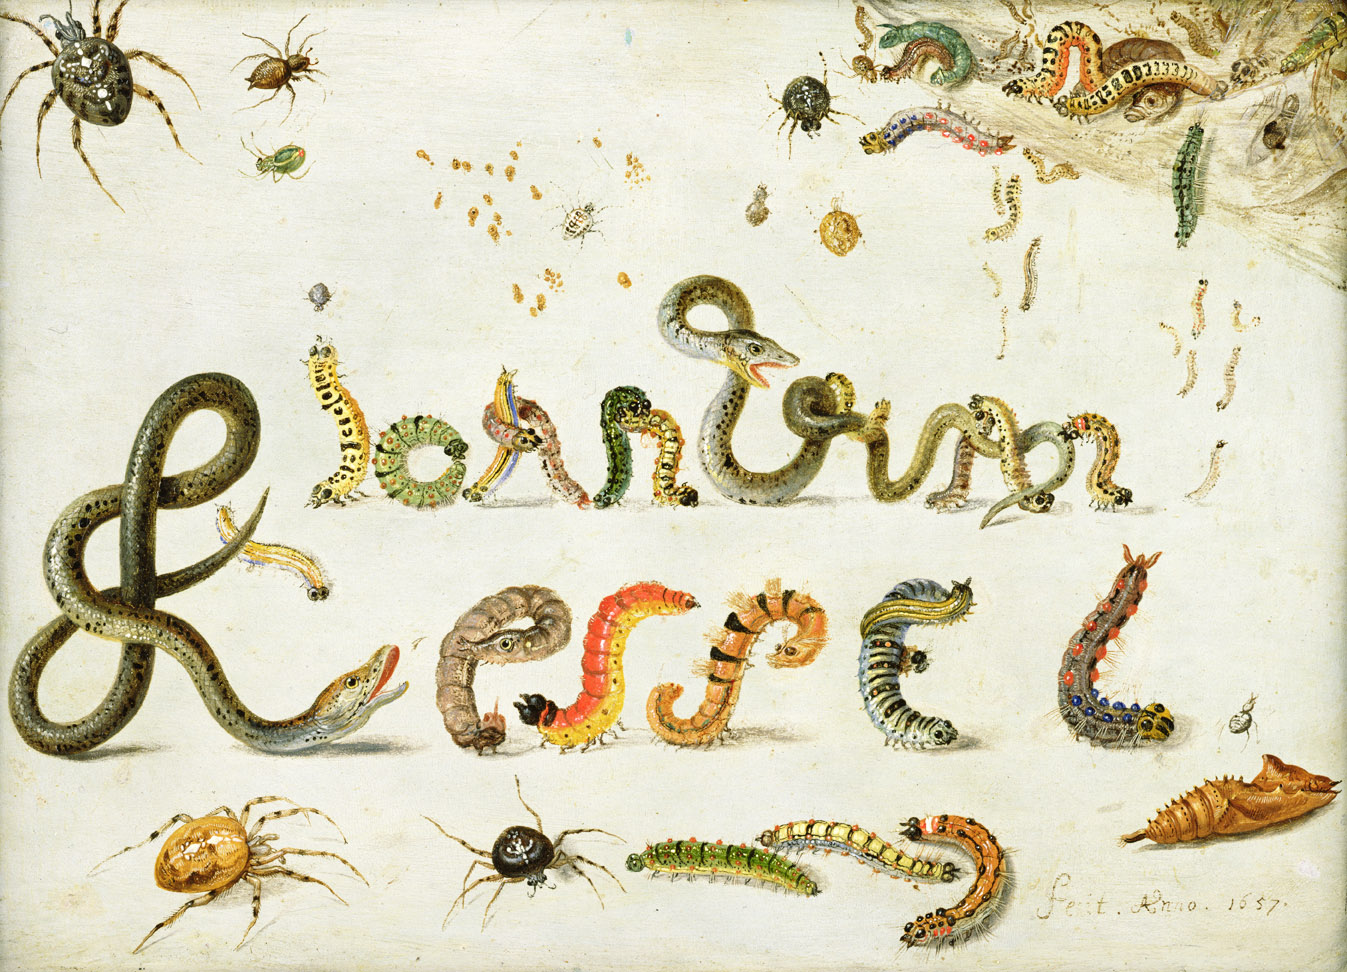 Spiders, snakes, and caterpillars spelling the artist's name, by Jan van Kessel the Elder, 1657.